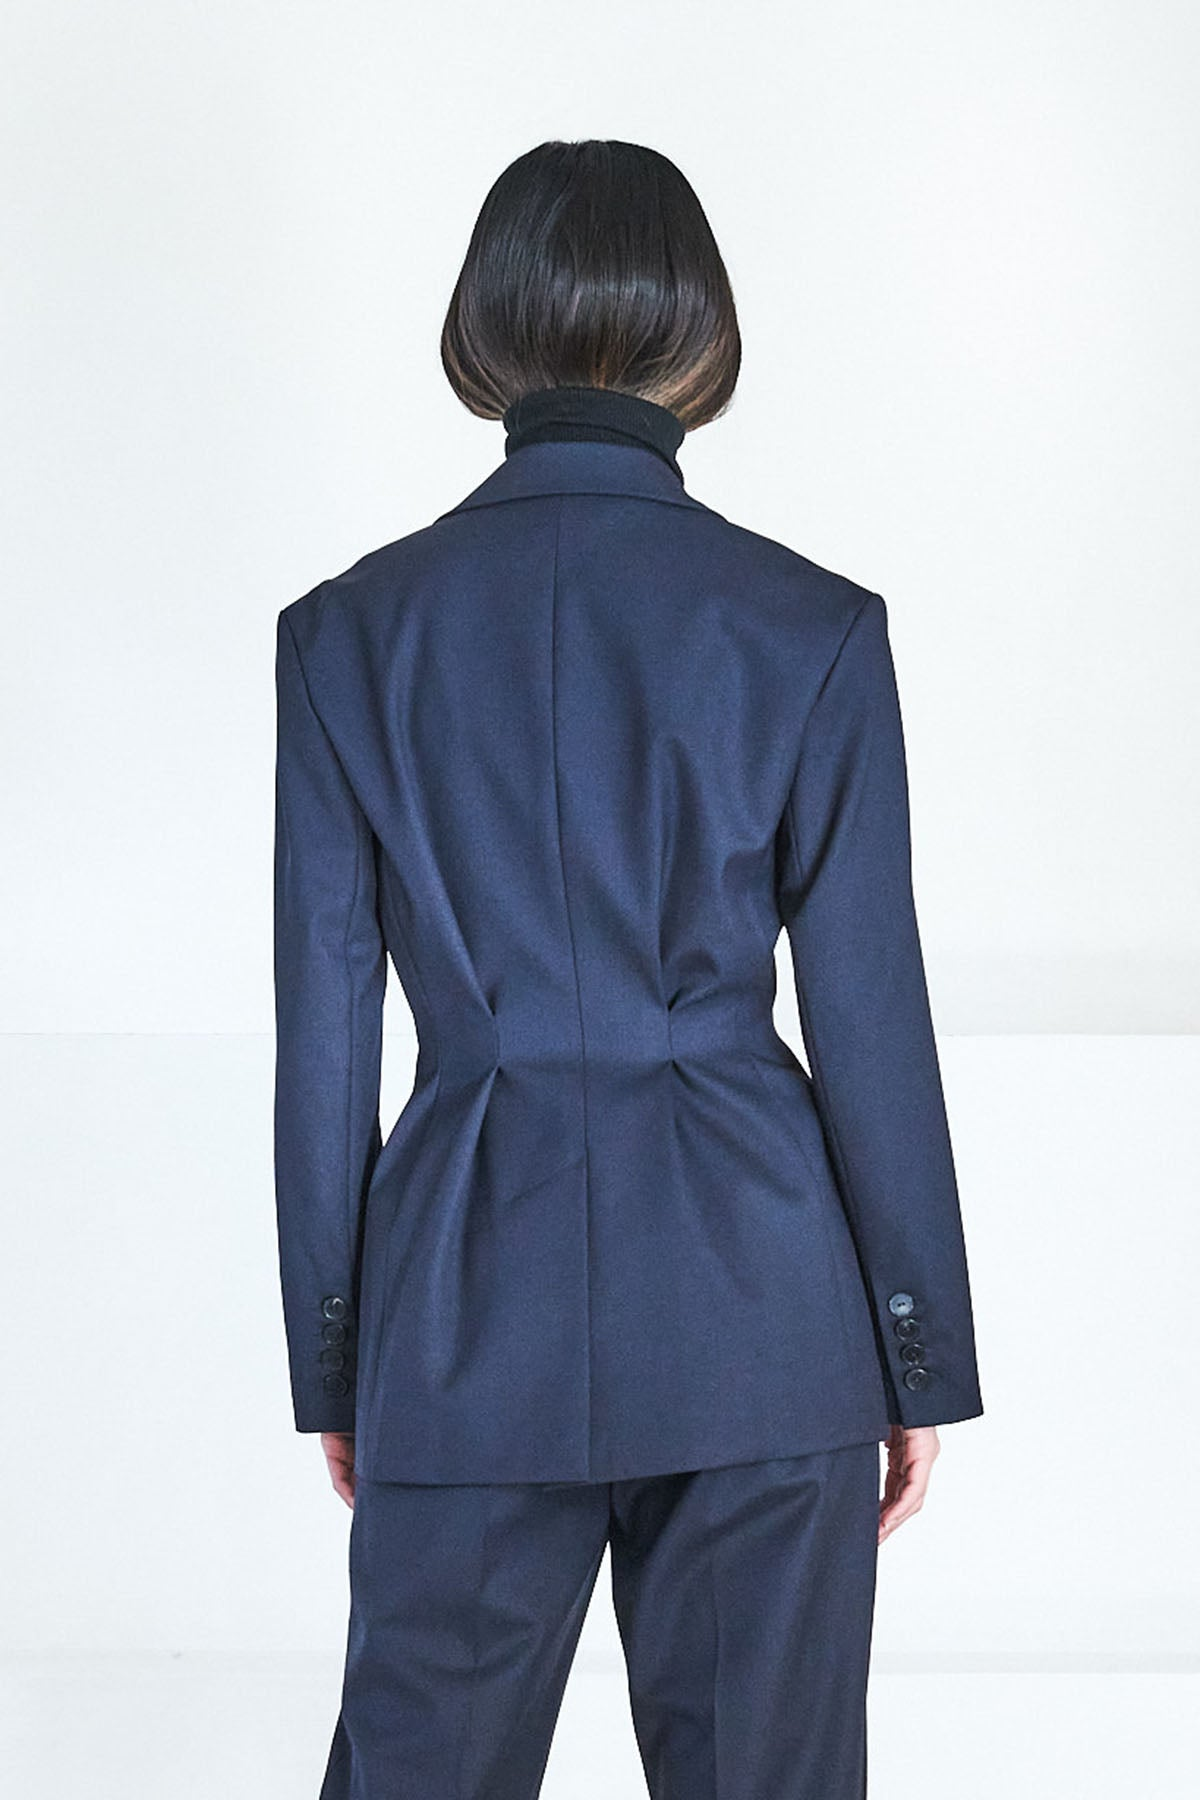 GAUCHERE - rachel jacket, dark blue